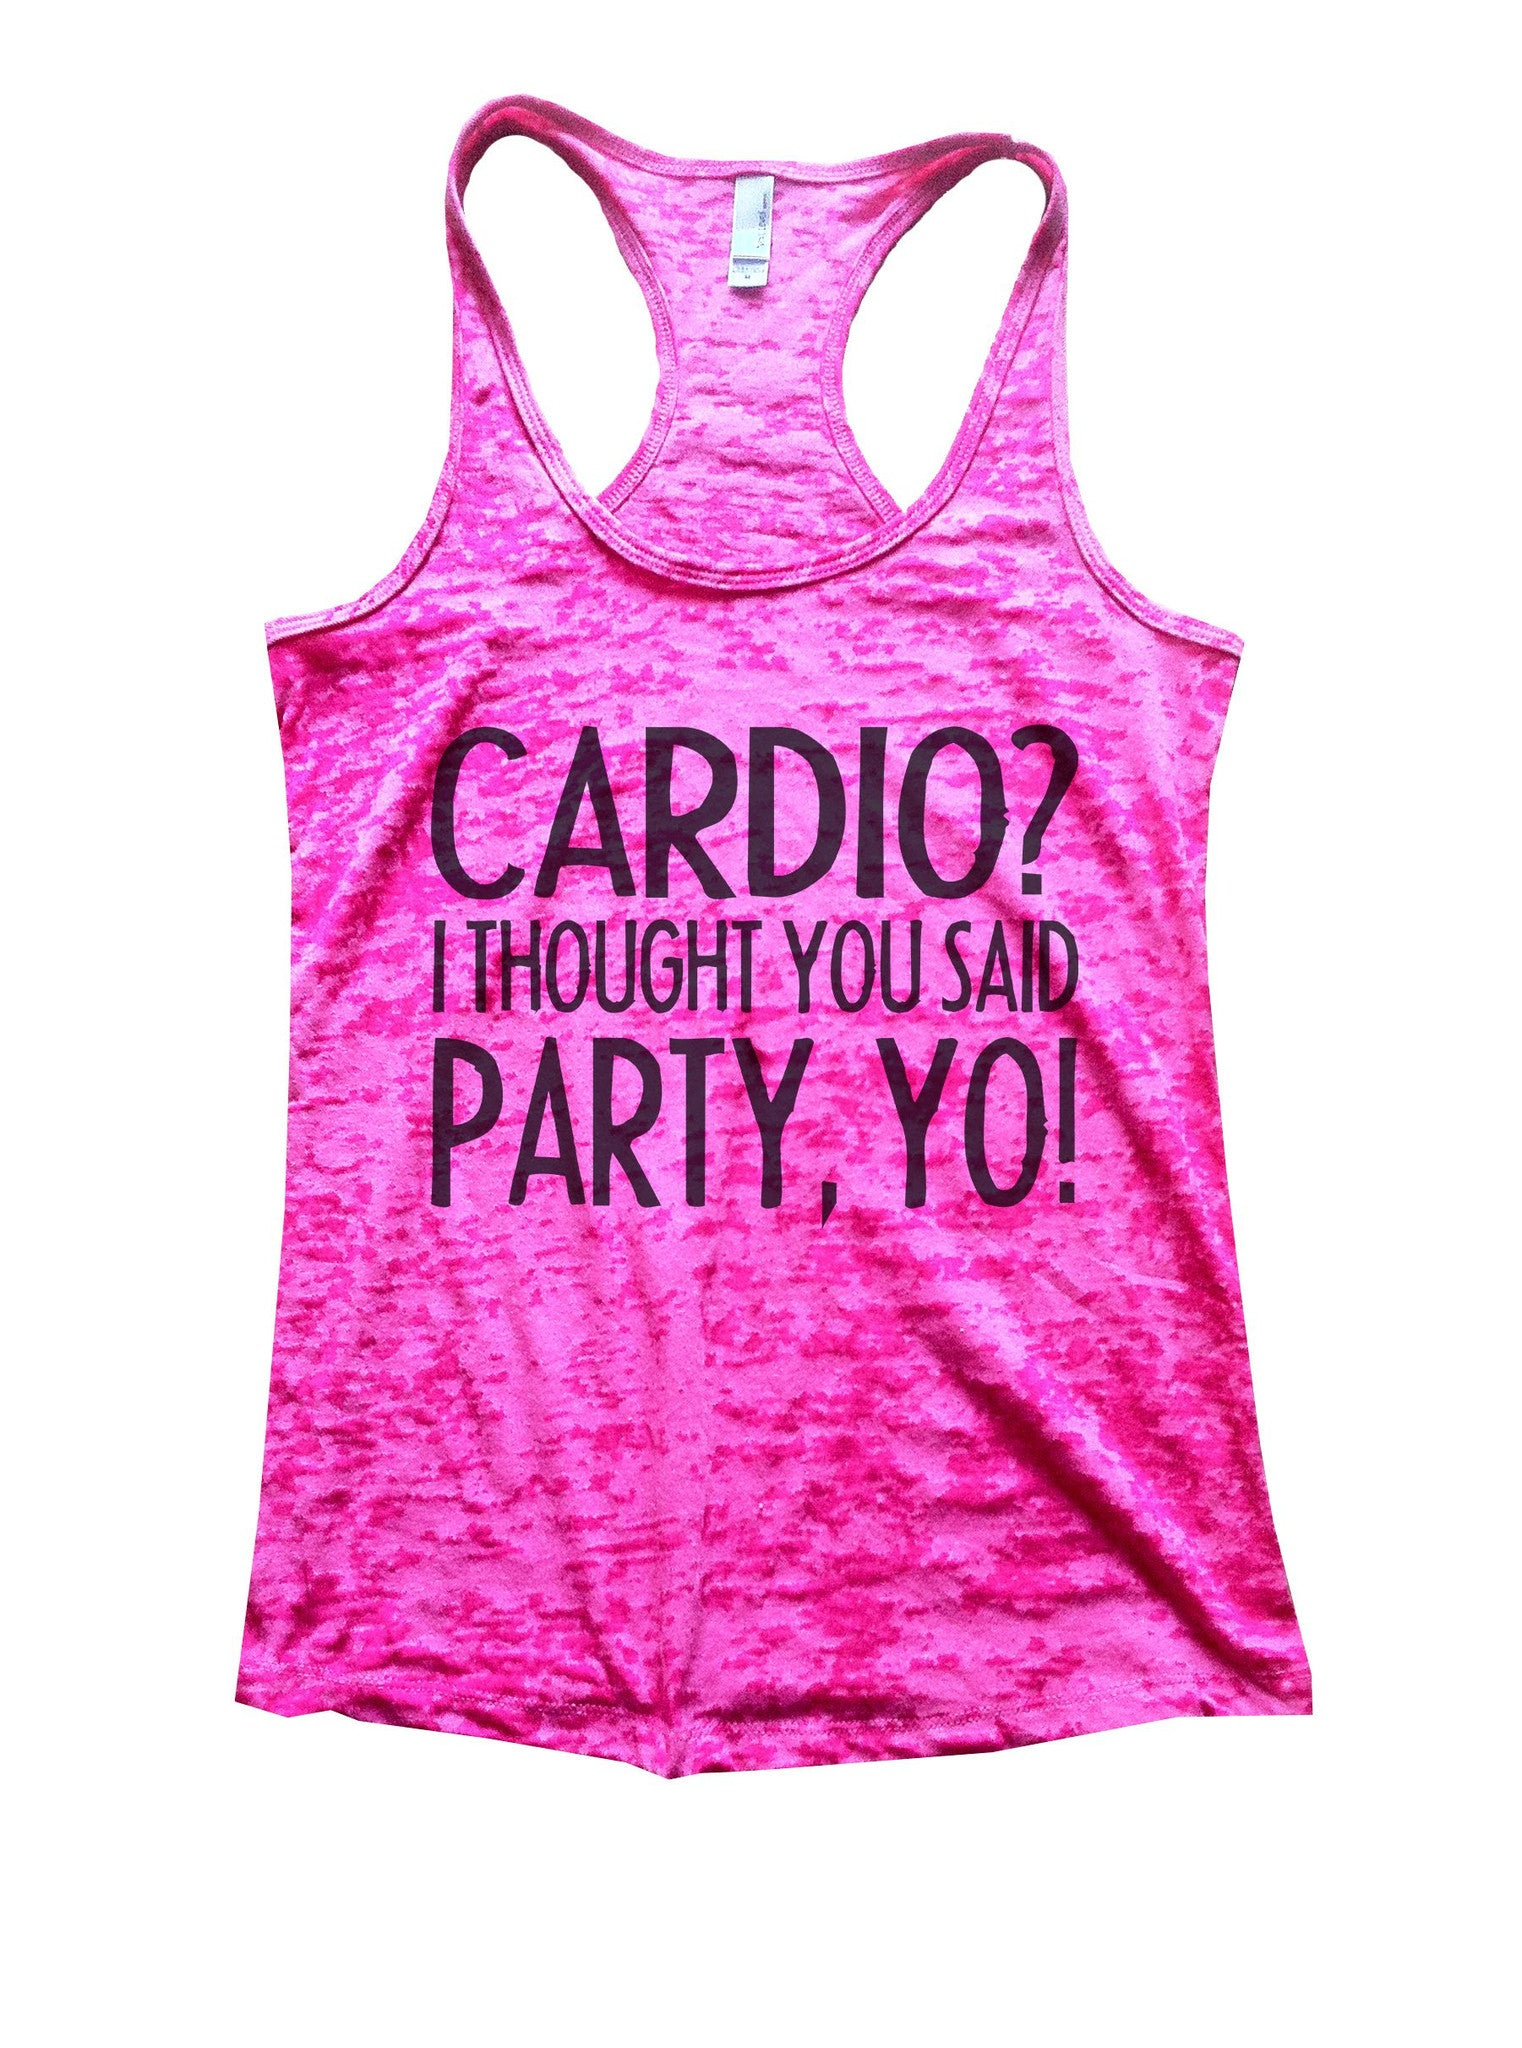 Cardio? I Thought You Said Party, Yo! Burnout Tank Top By BurnoutTankTops.com - 932 - Funny Shirts Tank Tops Burnouts and Triblends  - 7